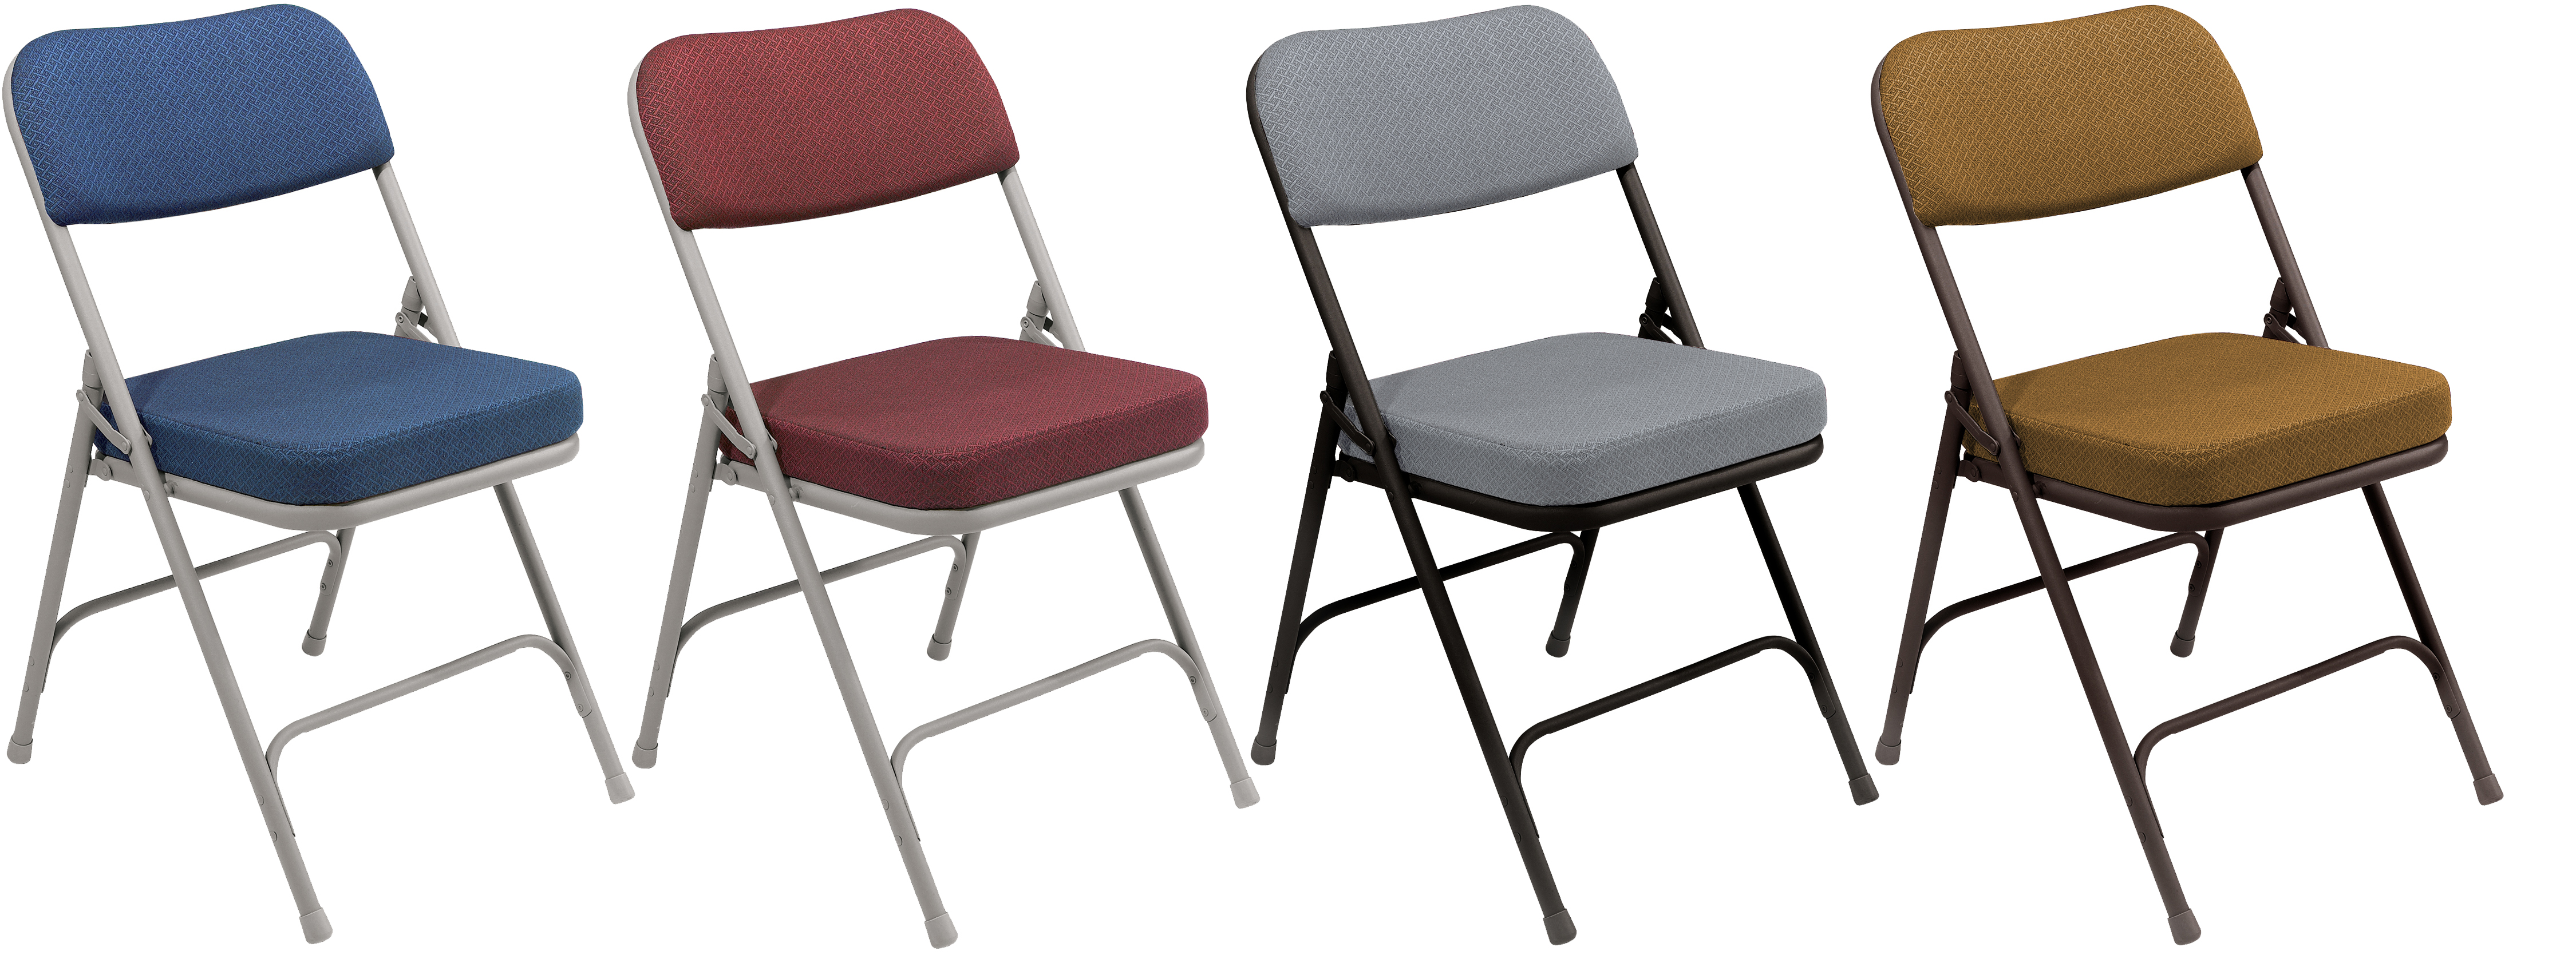 most comfortable folding chair gaming with keyboard and mouse tray chairs that make great gifts